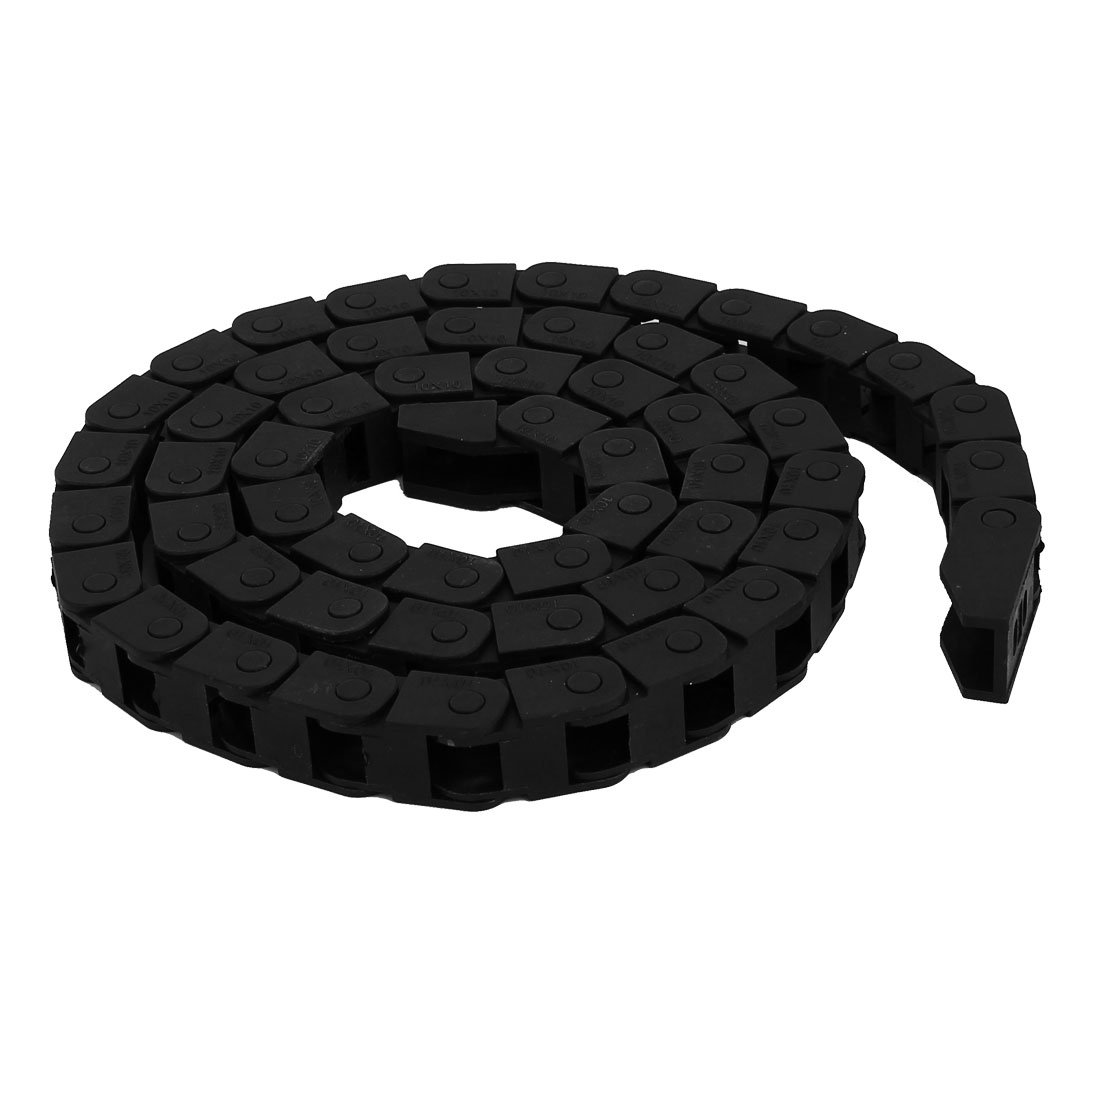 uxcell 10mmx10mm Black Nylon Towline Cable Drag Chain Wire Carrier 1M Length